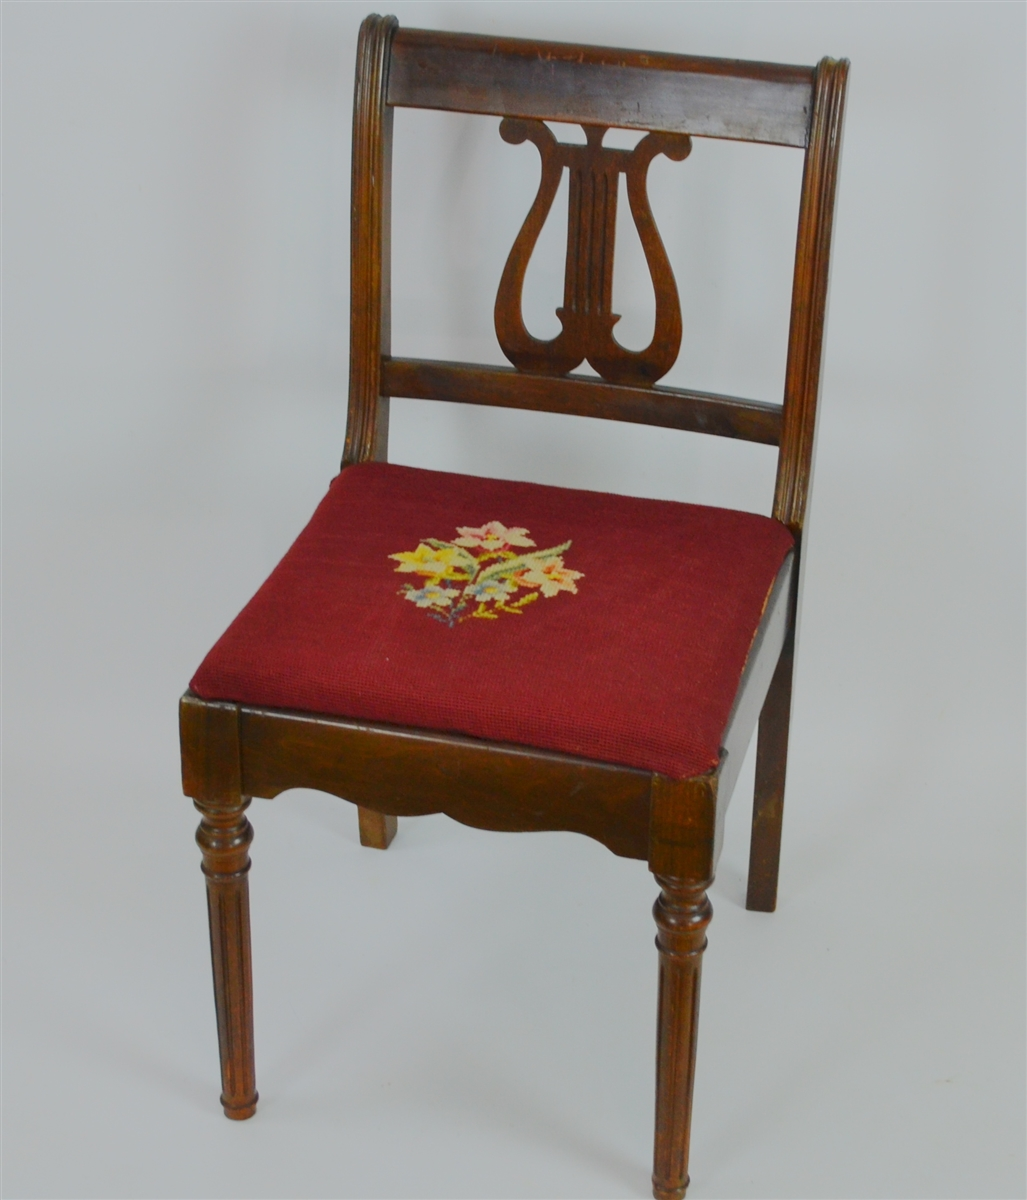 Lyre Harp Back Mahogany Chair With Needlepoint Seat